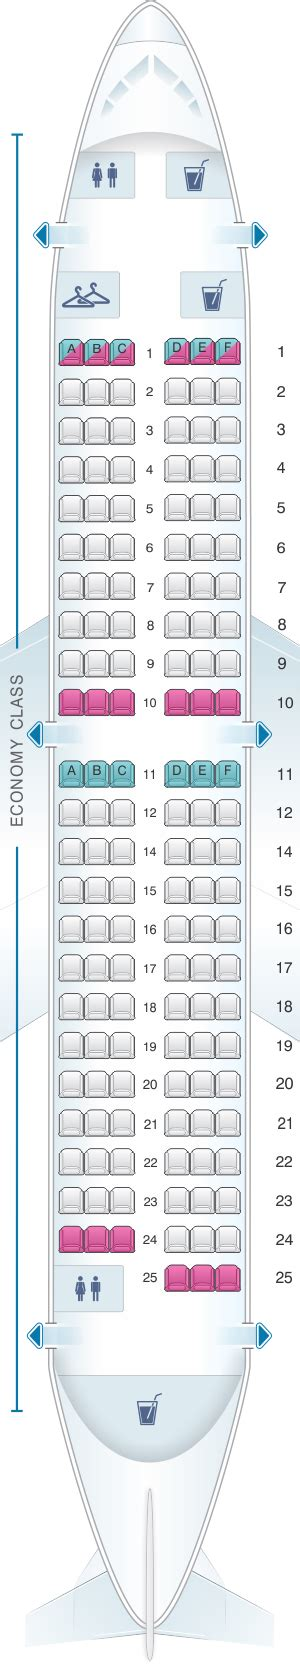 boeing 737 plan sieges seating chart boeing 737 800